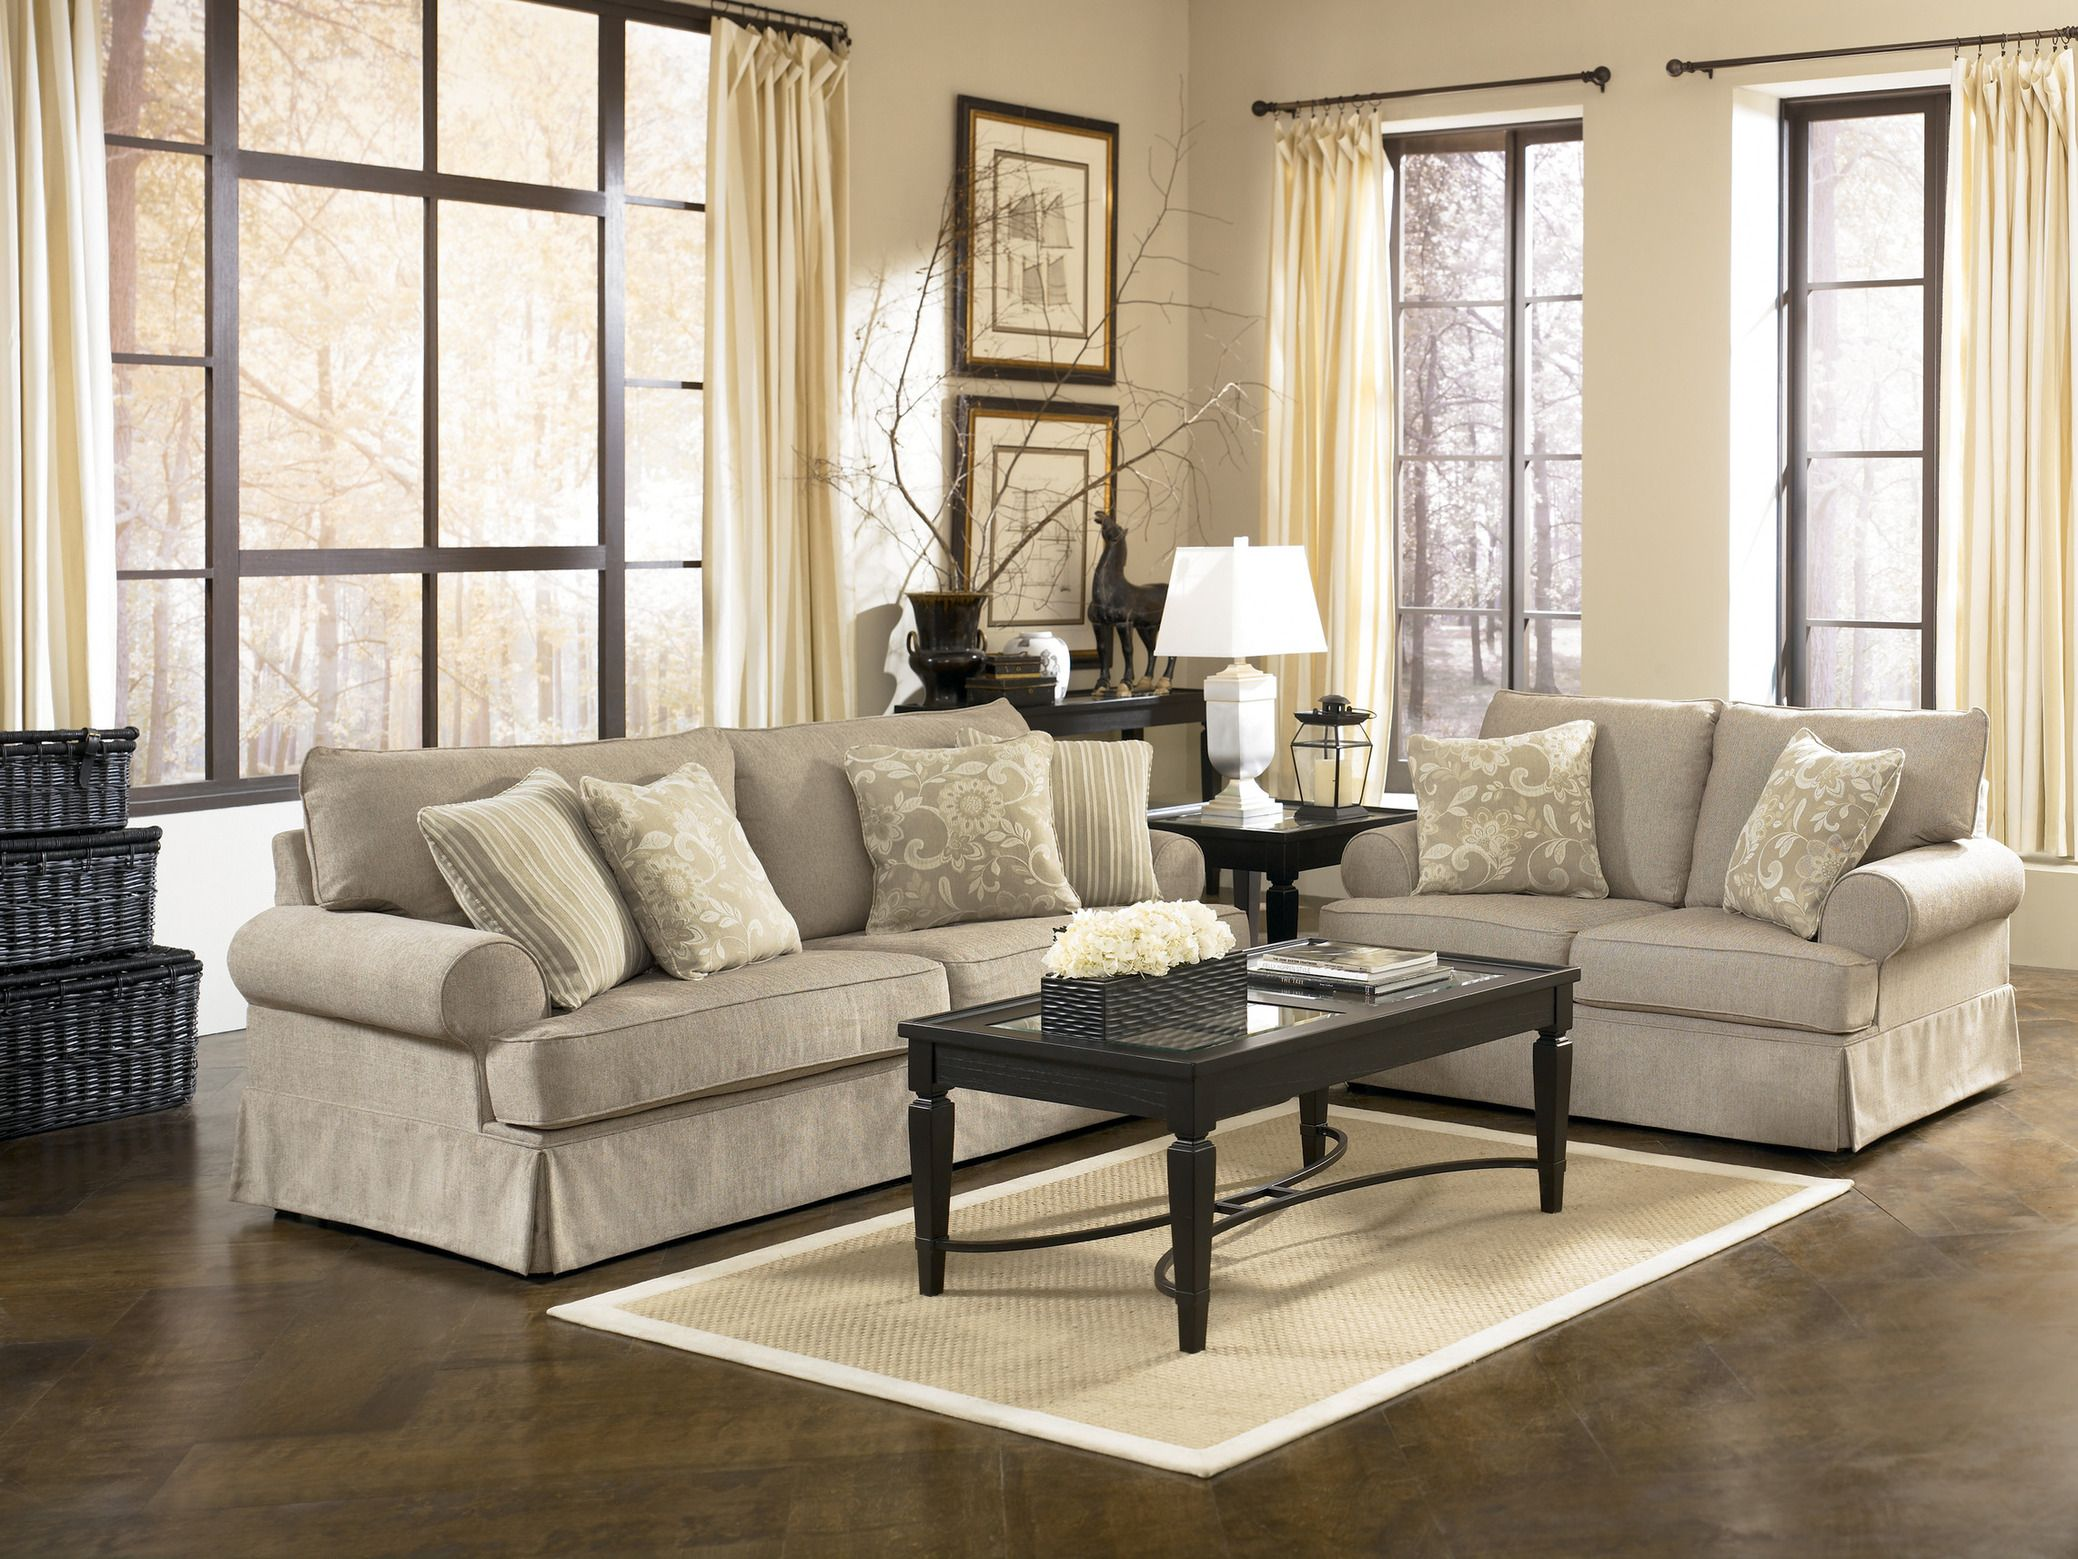 Best Beauteous Living Room Furniture Decoration With Grey 400 x 300